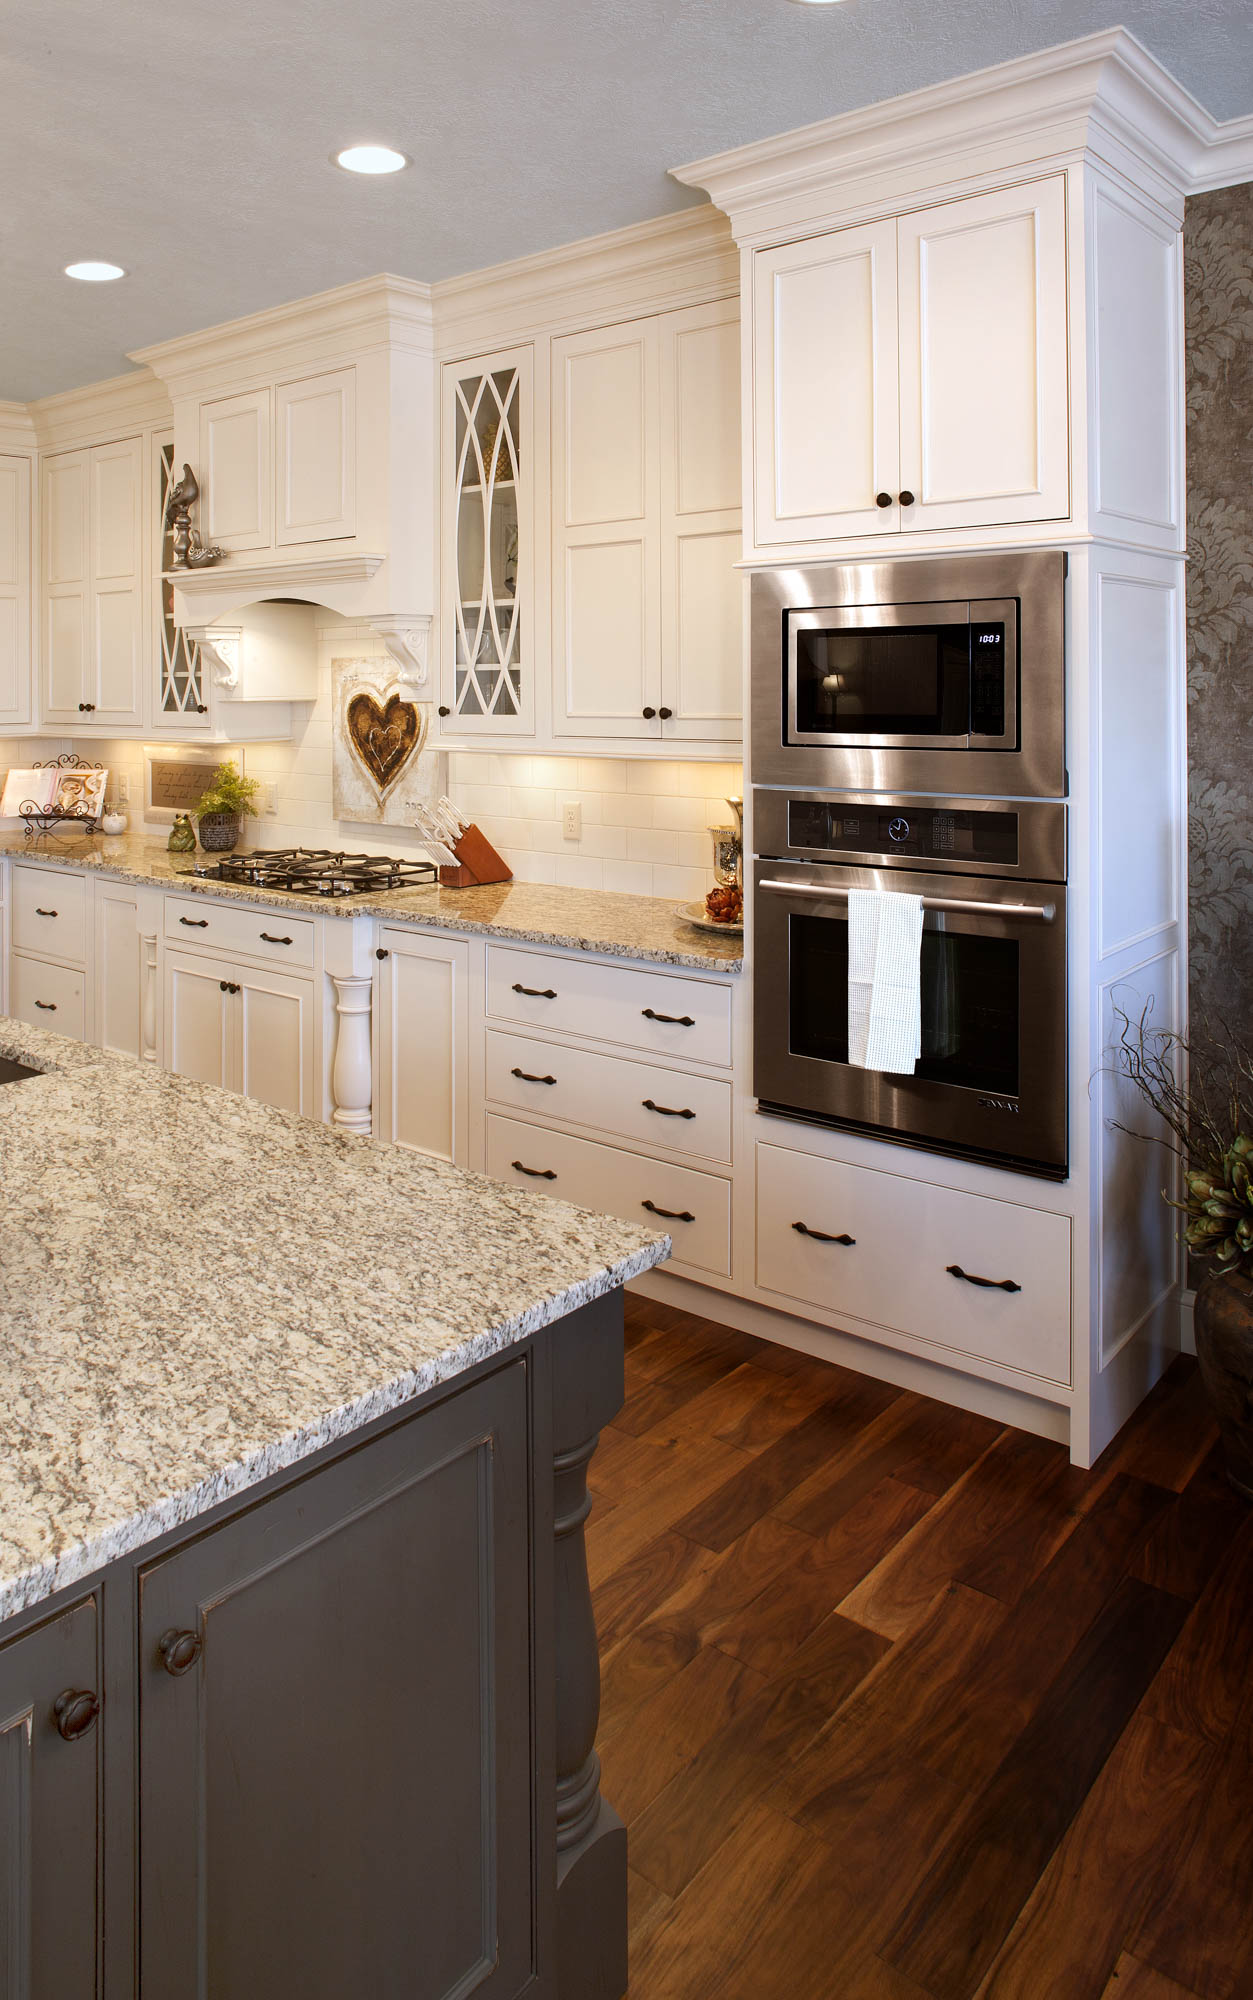 Painted Kitchen Cabinets In Soft Cream With Oatmeal Glaze By Showplace  Cabinetry   View 3